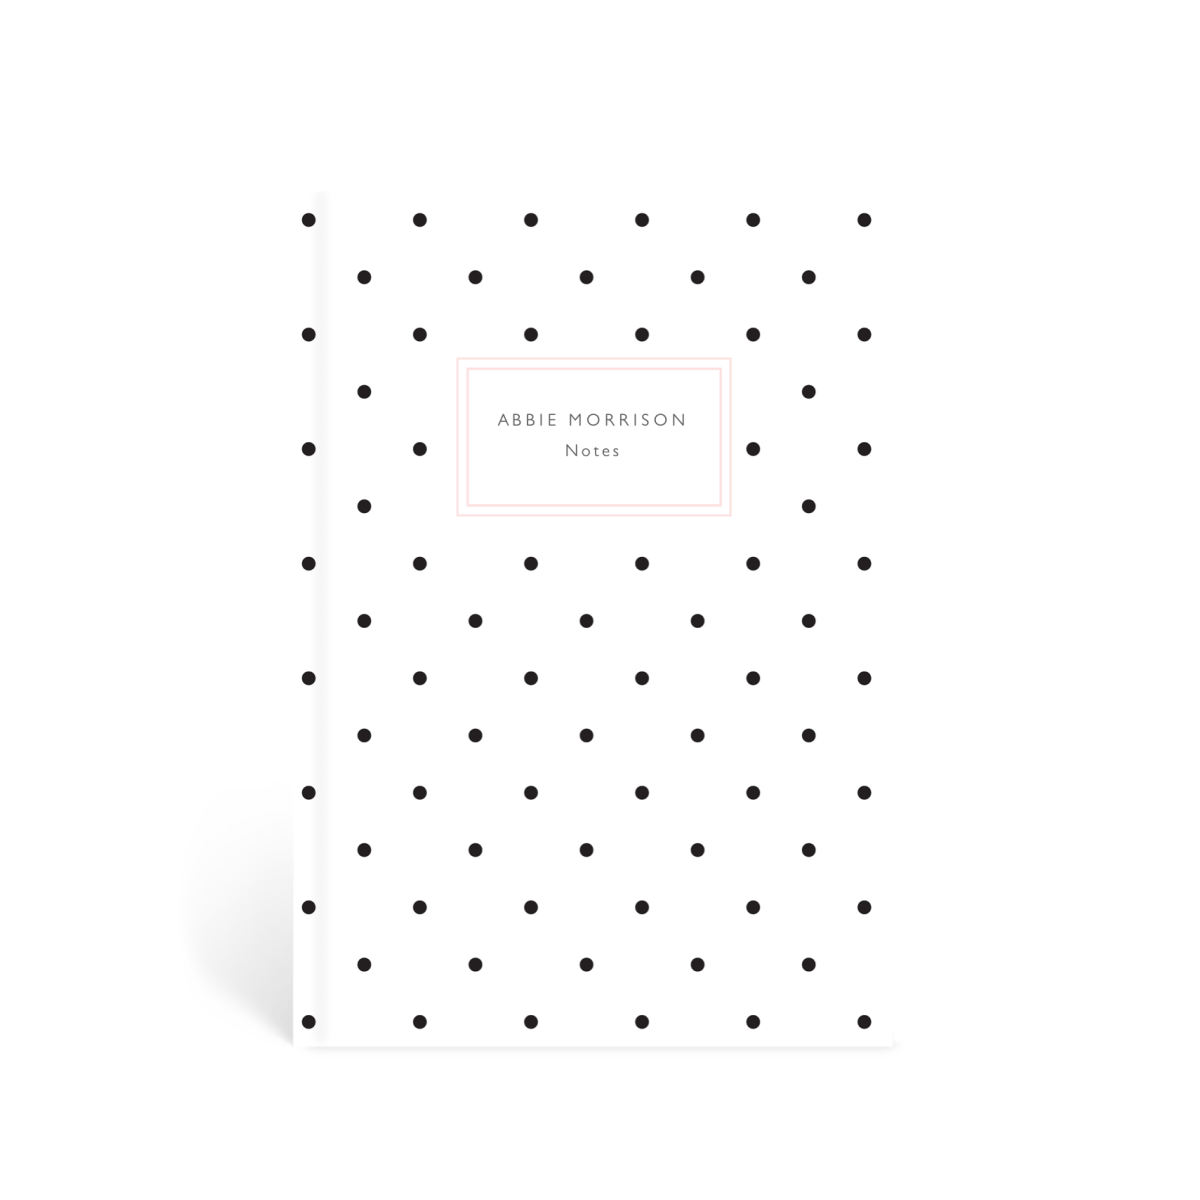 Https%3a%2f%2fwww.papier.com%2fproduct image%2f42034%2f25%2fpolka dots 10720 front 1567517332.png?ixlib=rb 1.1